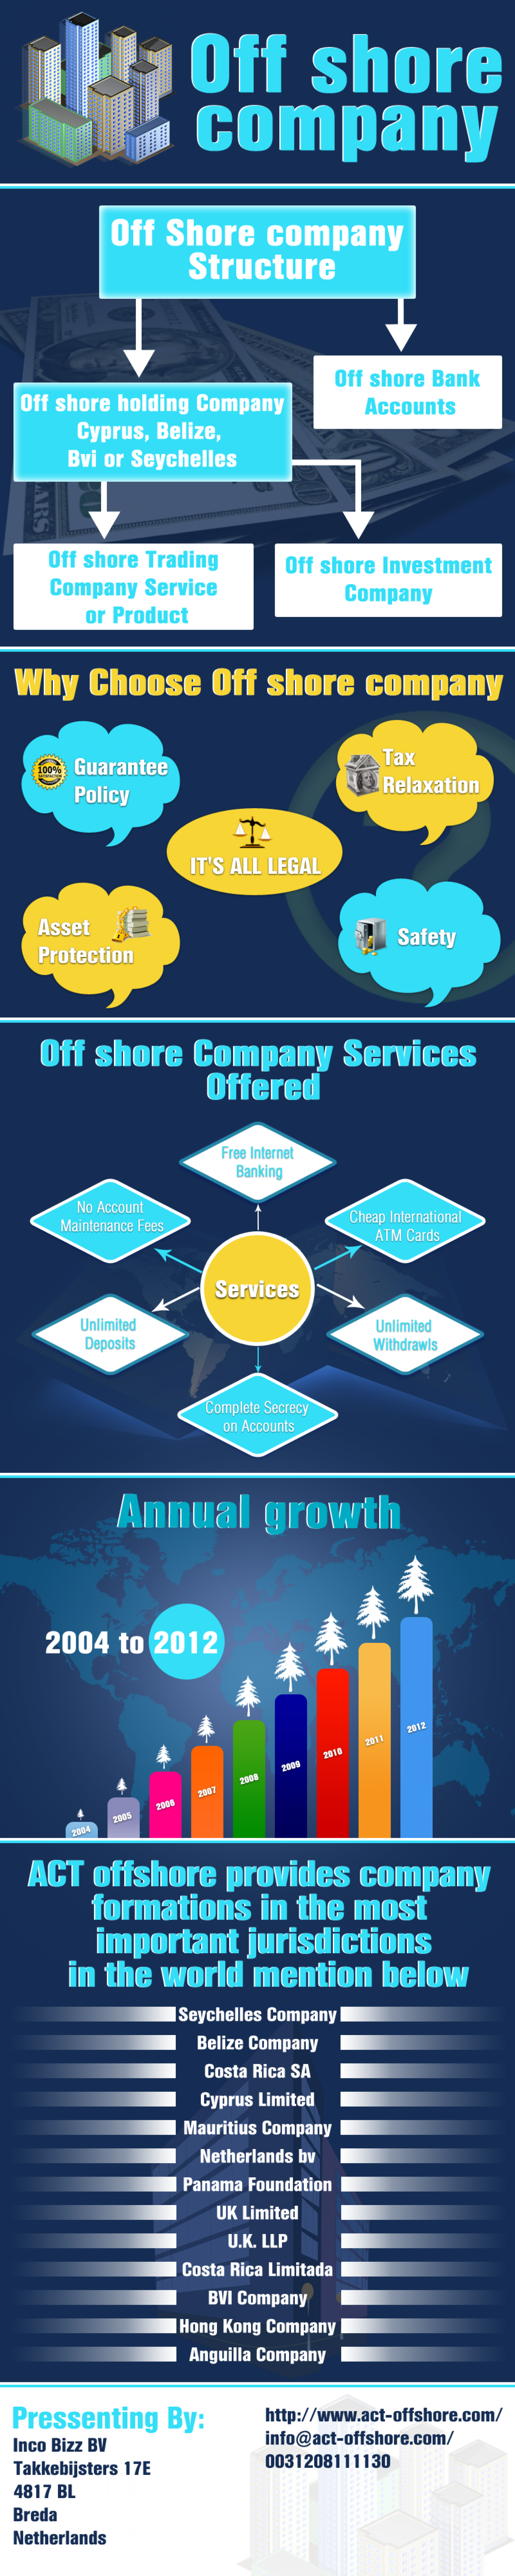 Offshore Company Infographic